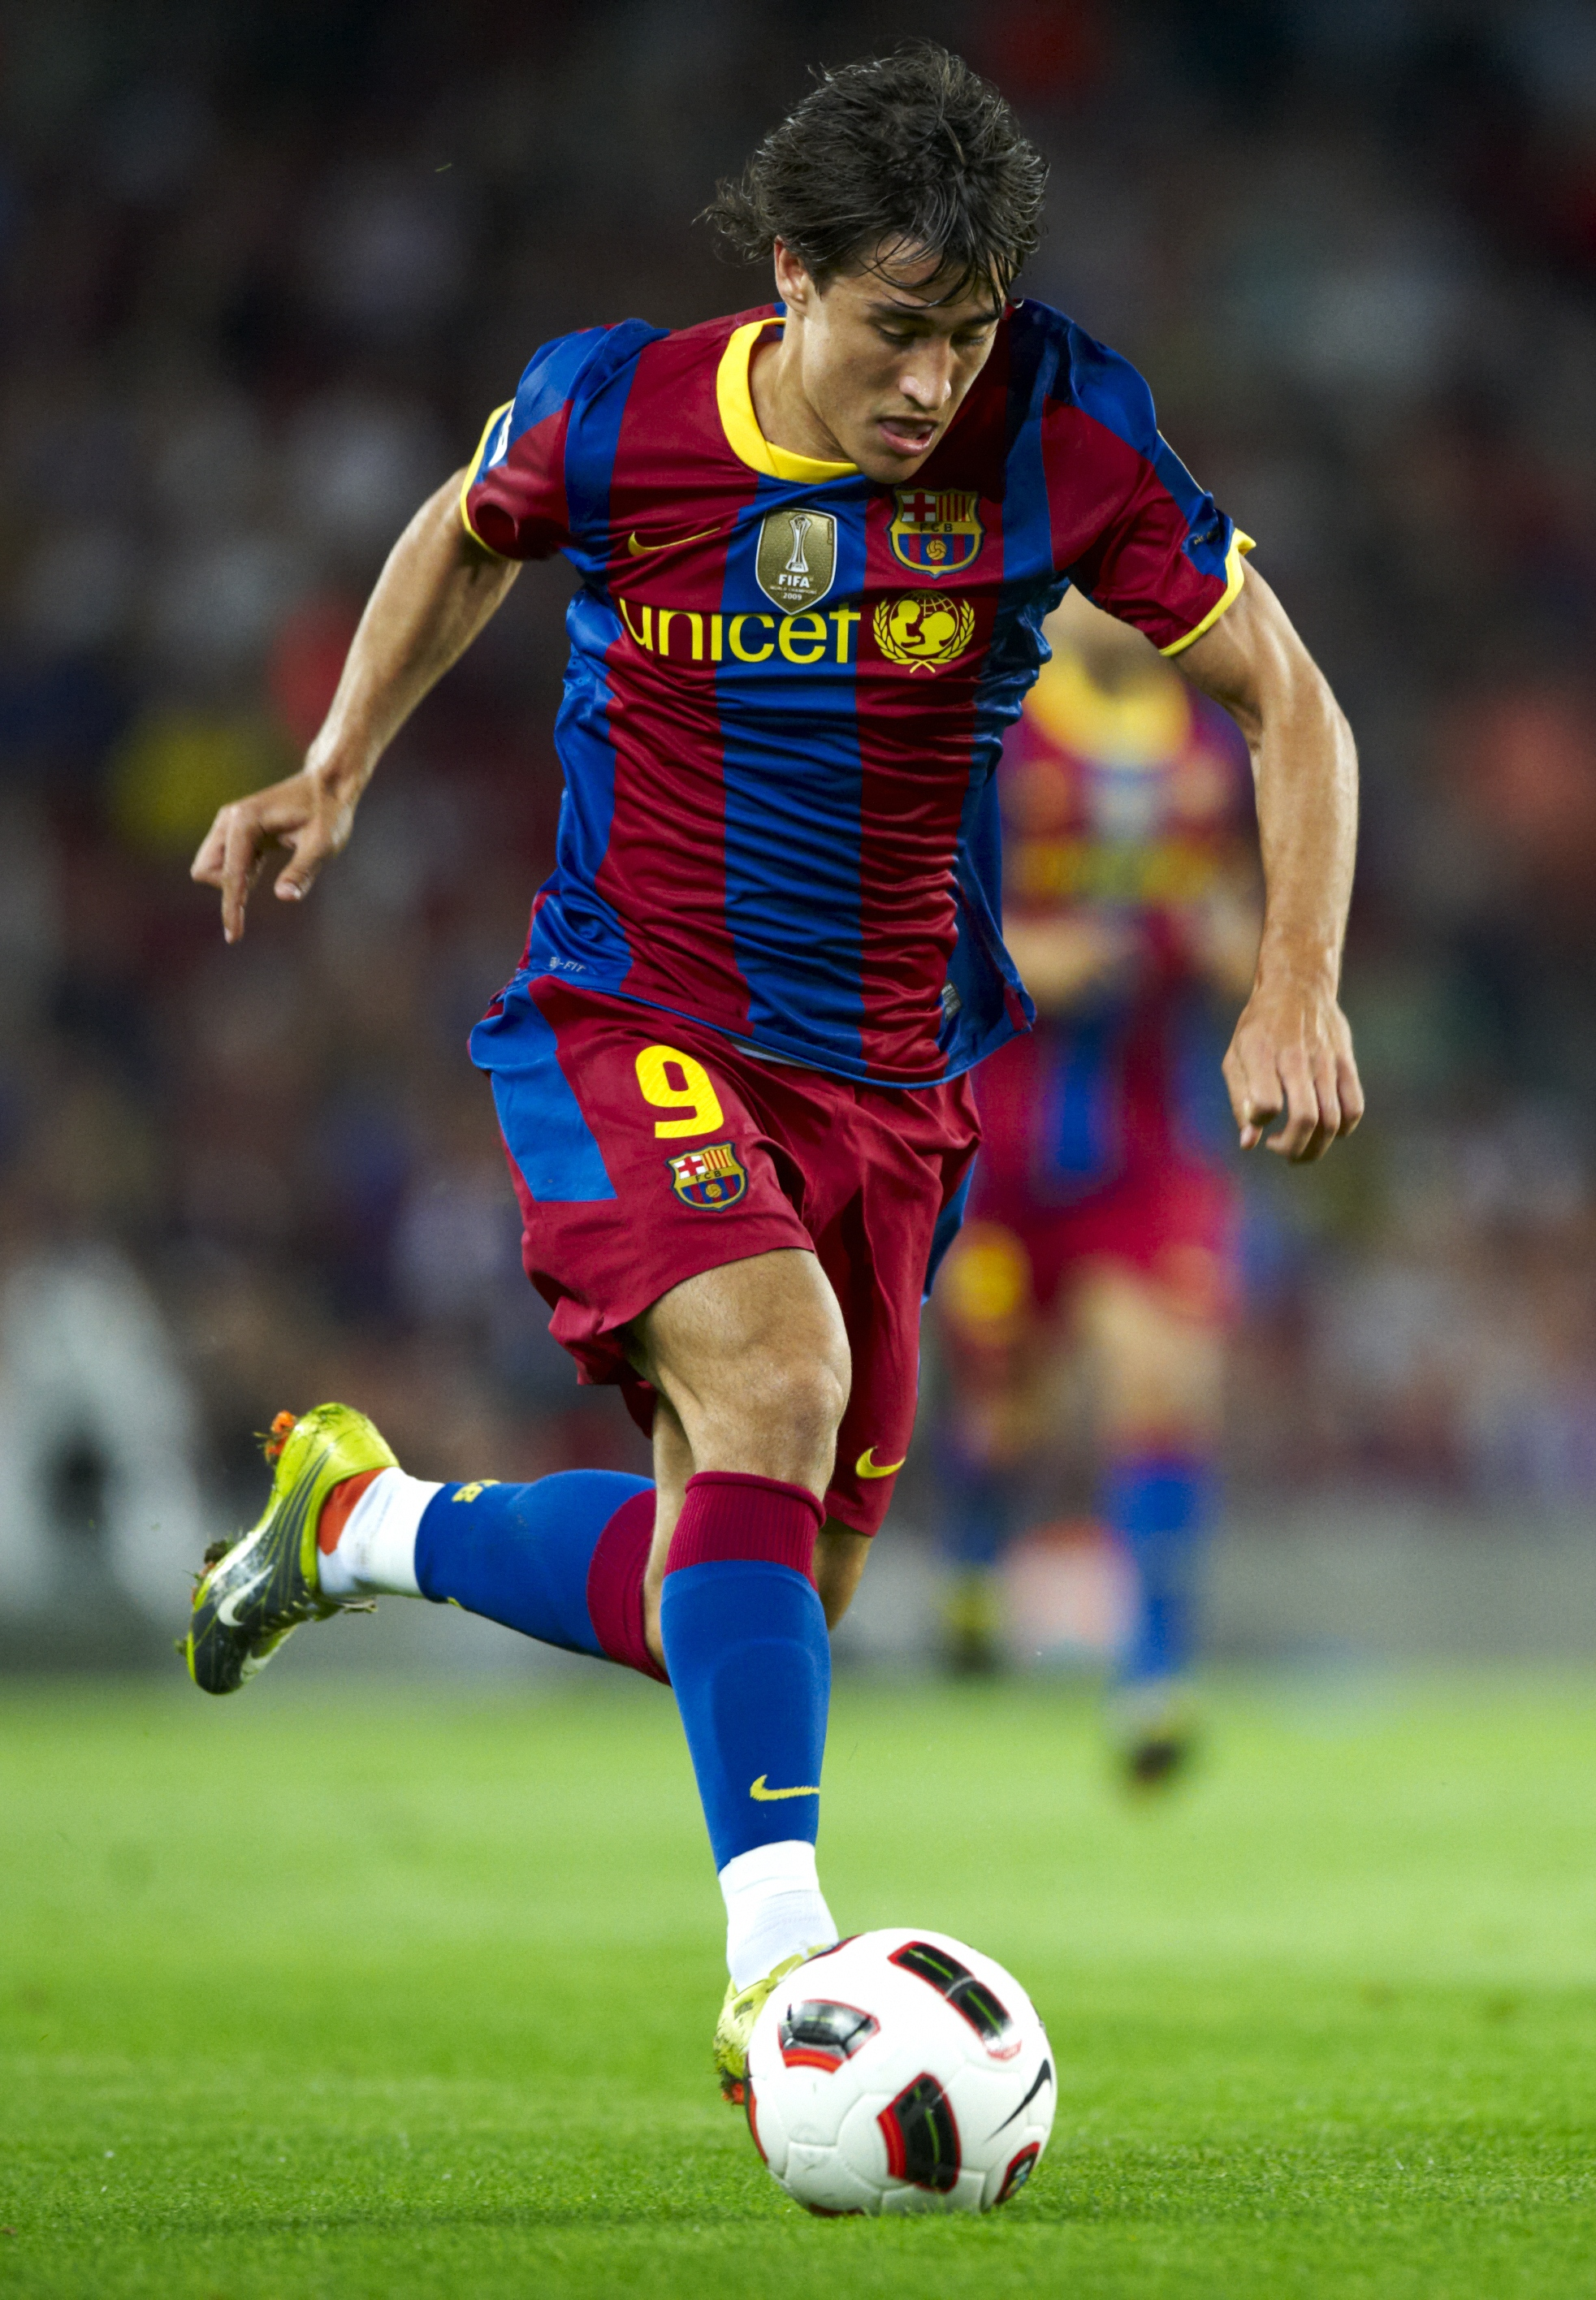 BARCELONA, SPAIN - SEPTEMBER 22:  Bojan Krkic of FC Barcelona runs with the ball during the La Liga match between Barcelona and Sporting de Gijon at Nou Camp on September 22, 2010 in Barcelona, Spain. Barcelona won 1-0.  (Photo by Manuel Queimadelos Alons